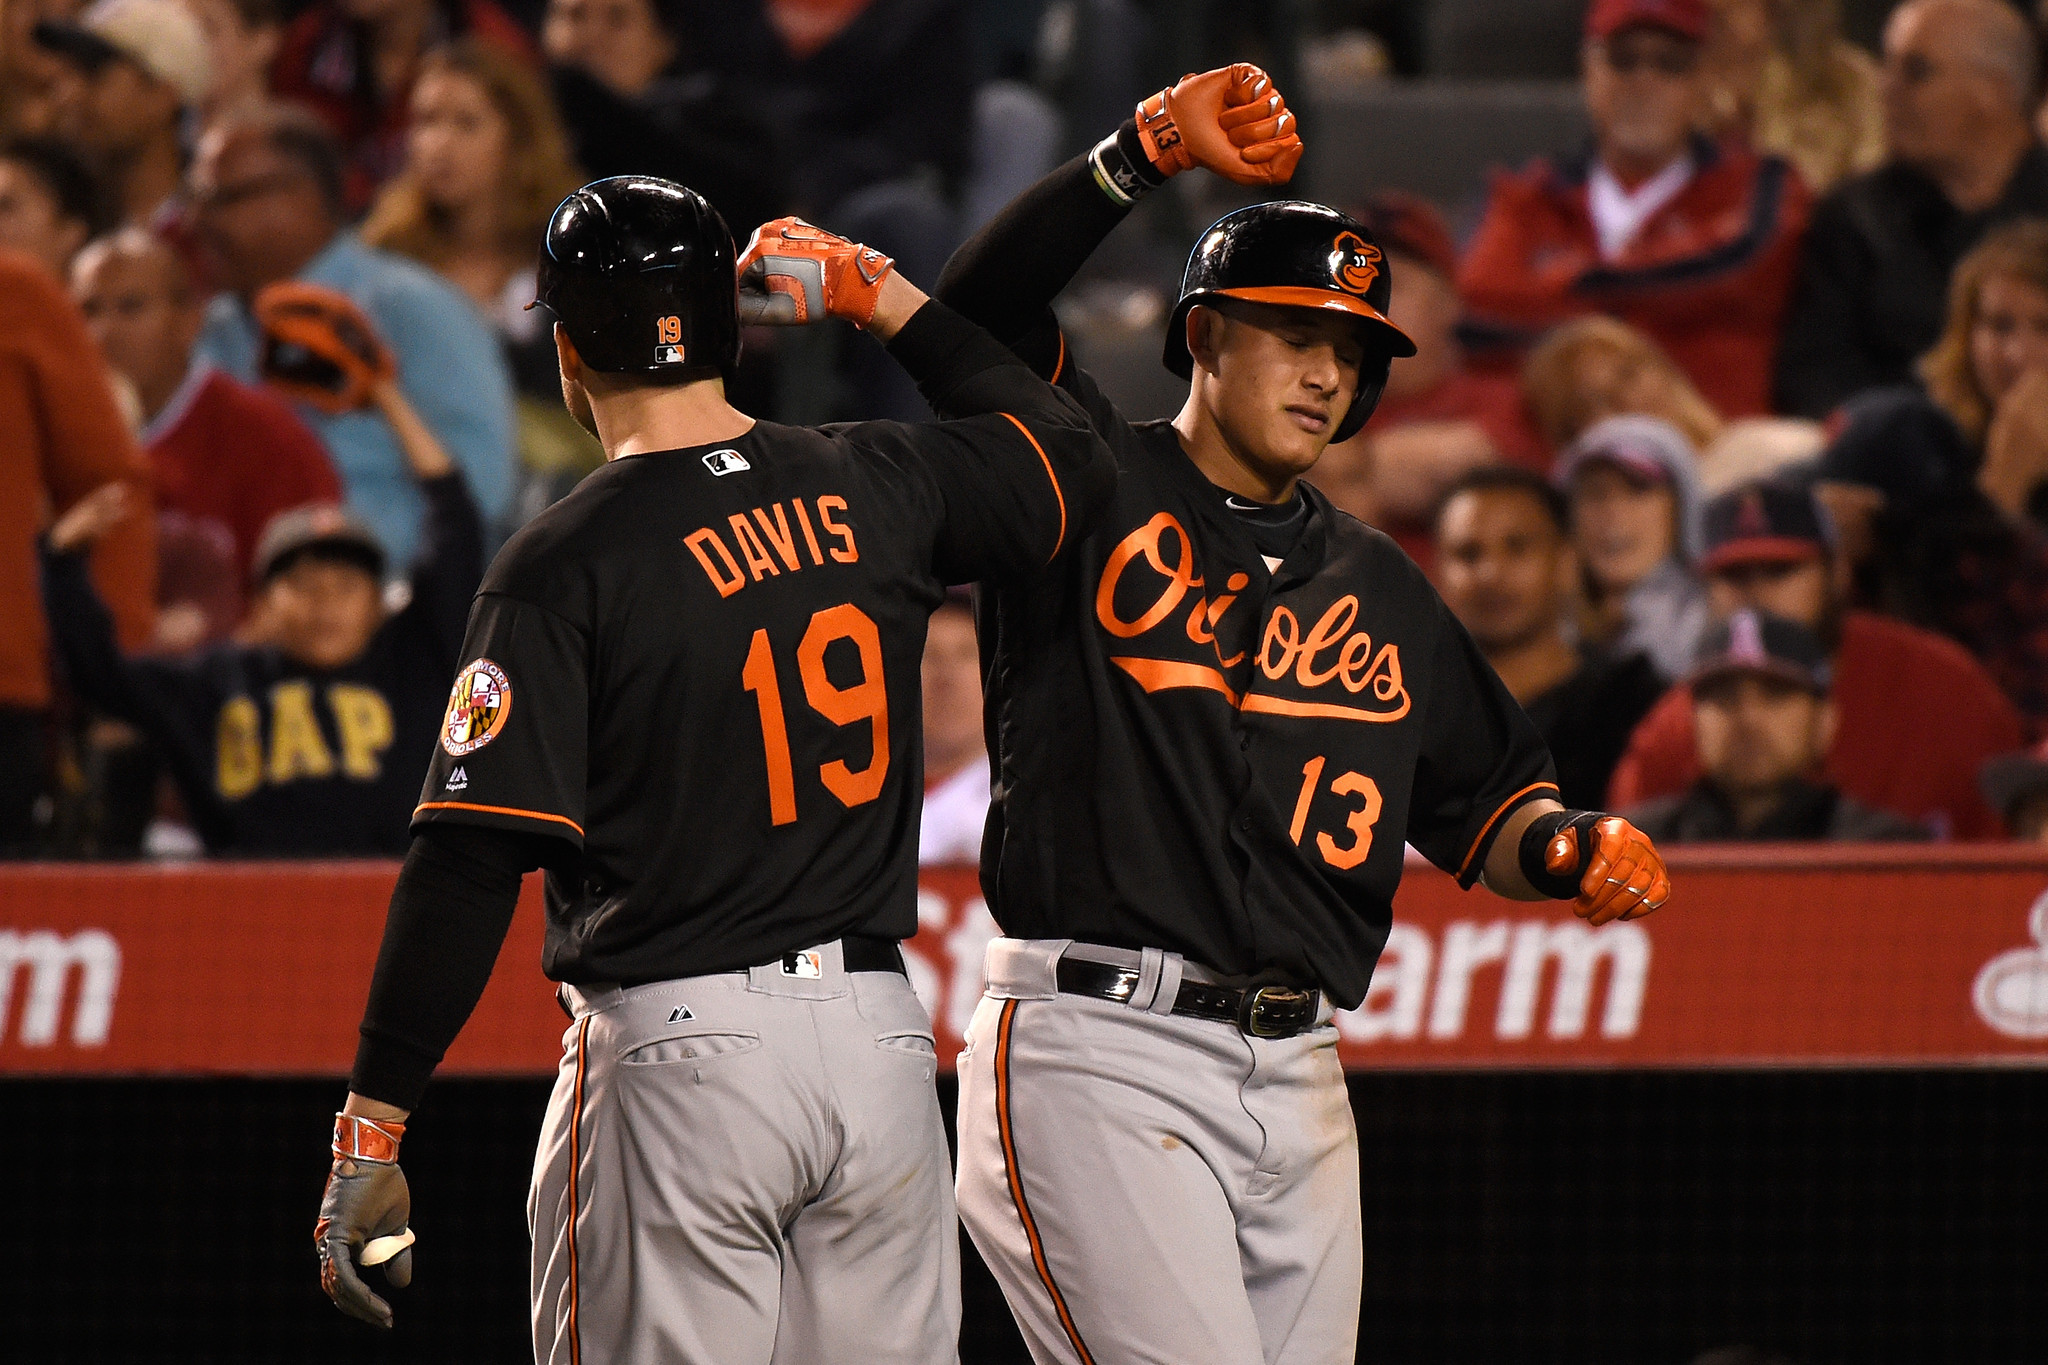 Bal-orioles-recap-four-home-runs-give-birds-league-lead-9-4-win-over-angels-to-open-series-20160520